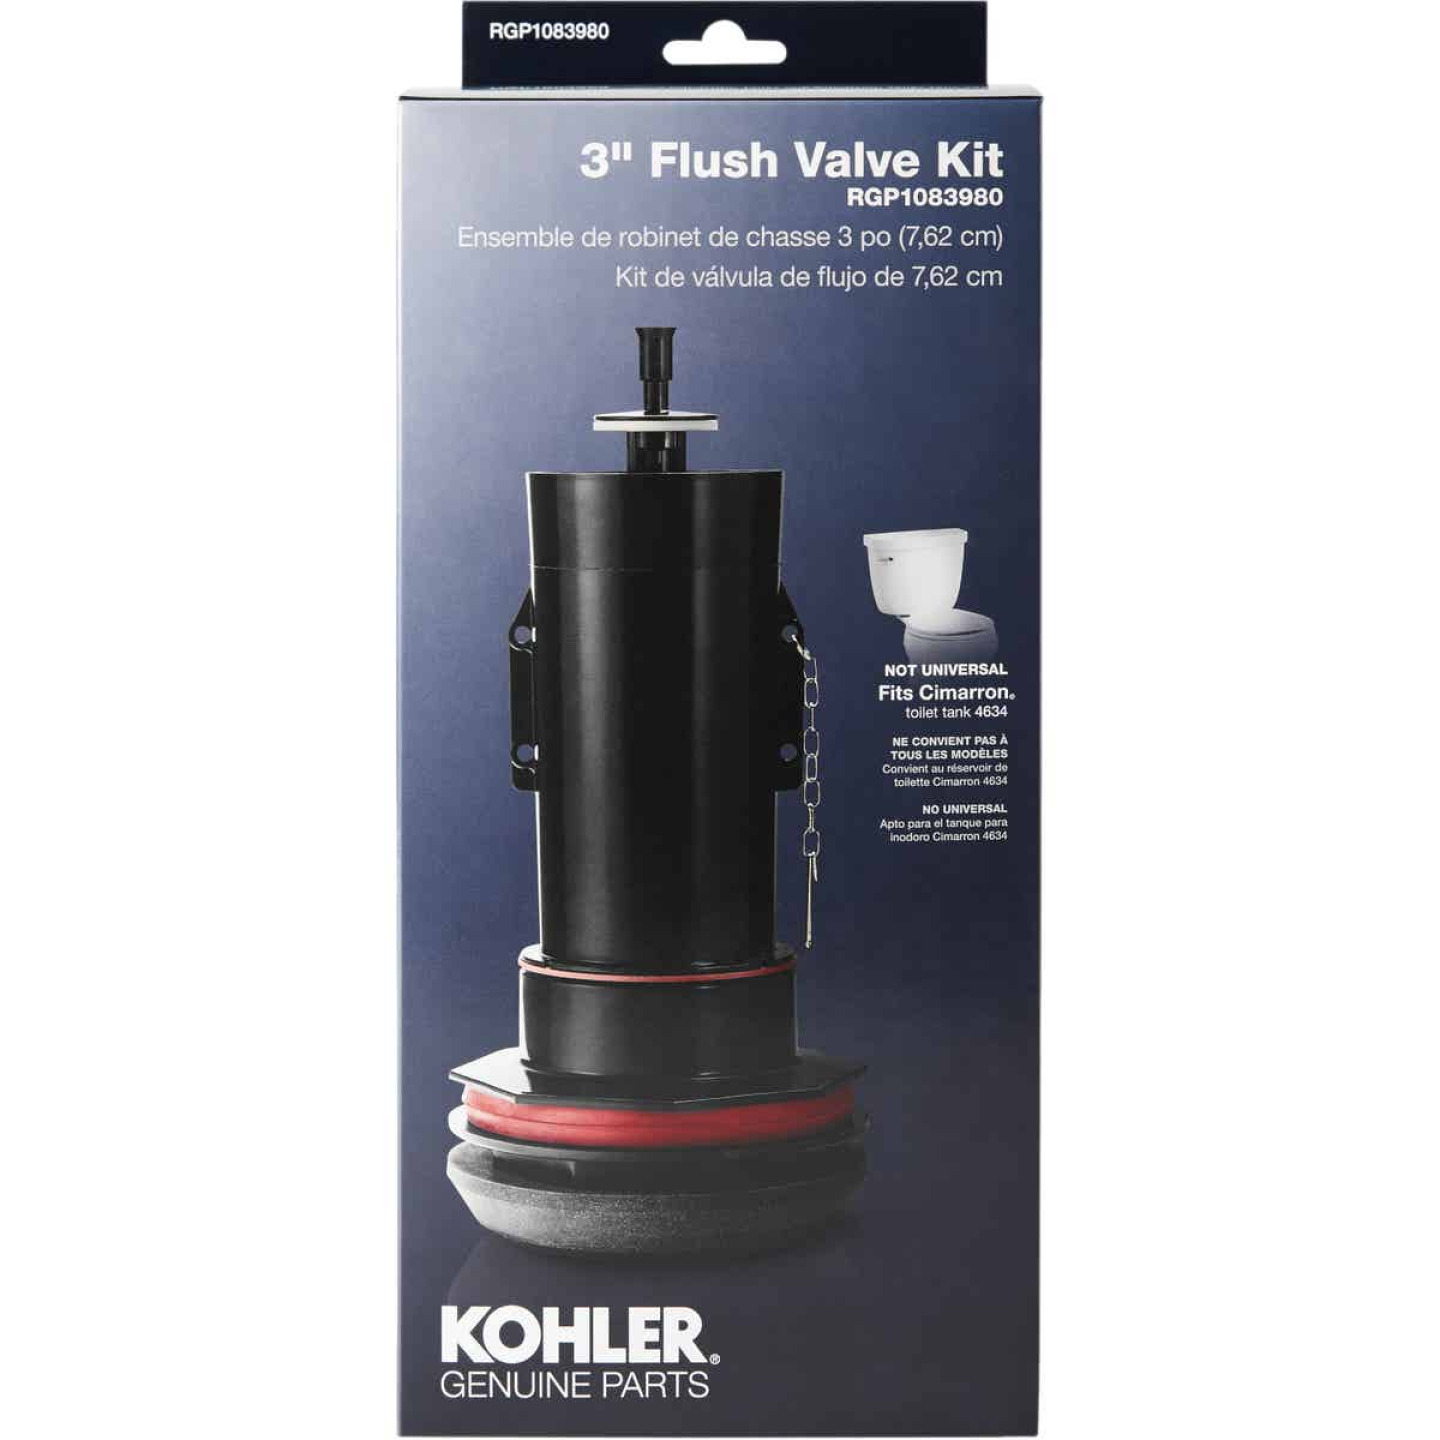 Kohler 3 In. Toilet Canister Flush Valve Repair Kit for Cimarron K-4634 Toilets Image 1